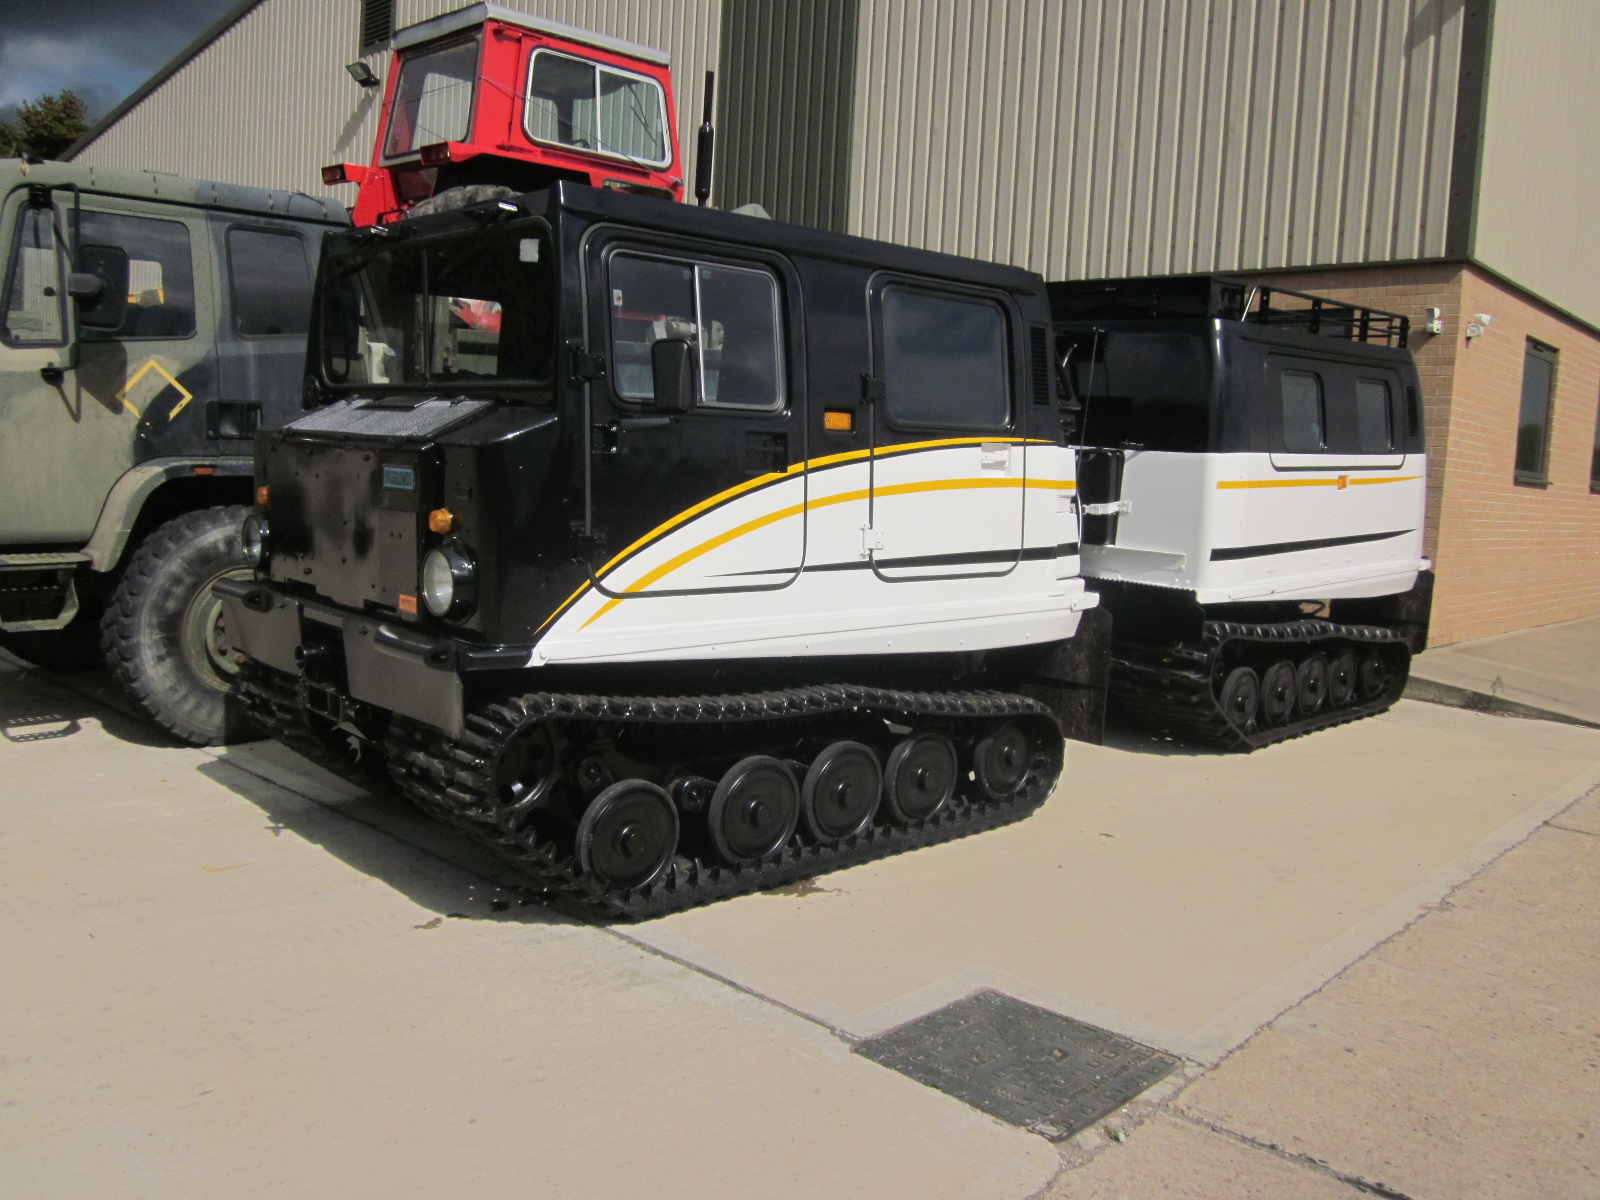 Hagglund BV206 Personnel Carrier (New Turbo Diesel ) for sale